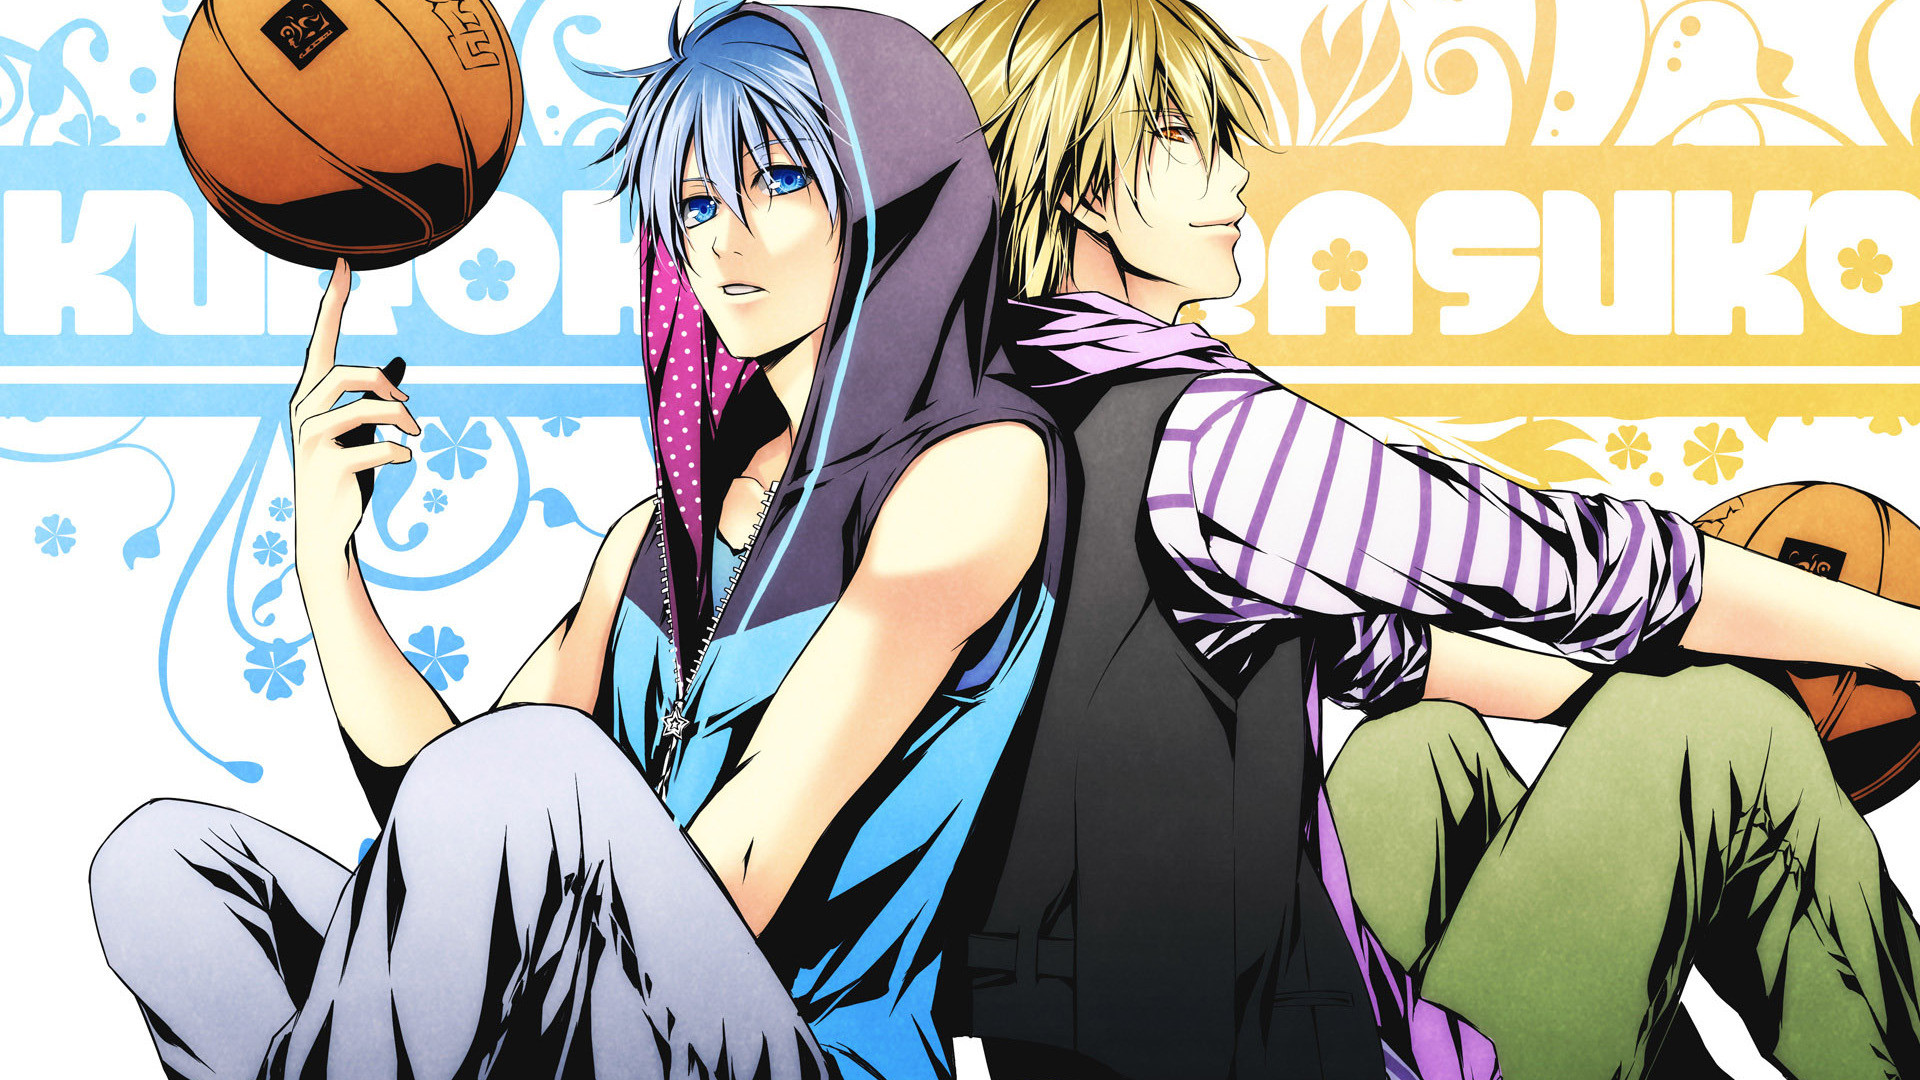 1920x1080 Kuroko's Basketball Cast 19 Free Wallpaper